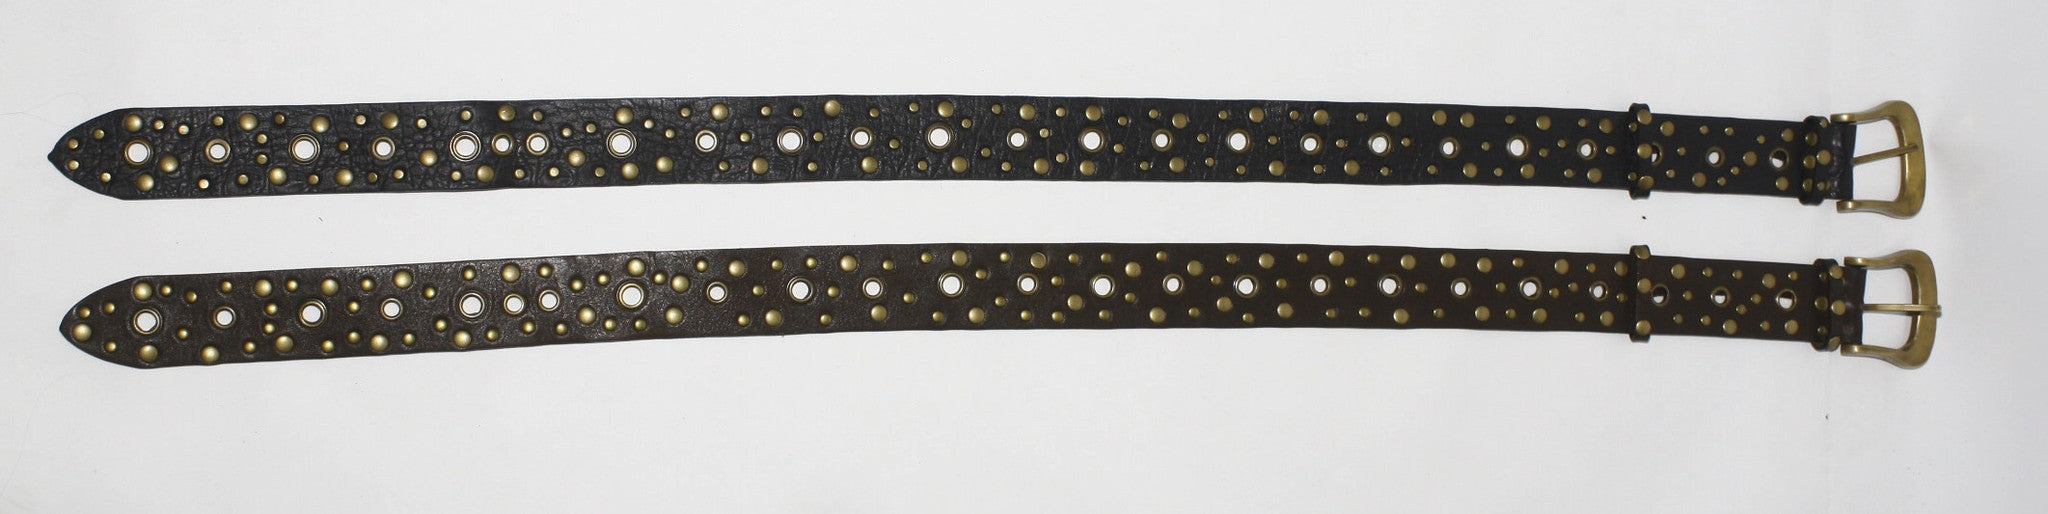 Black Leather Belt - Hand Studded Leather - FUNKY SIMPLICITY